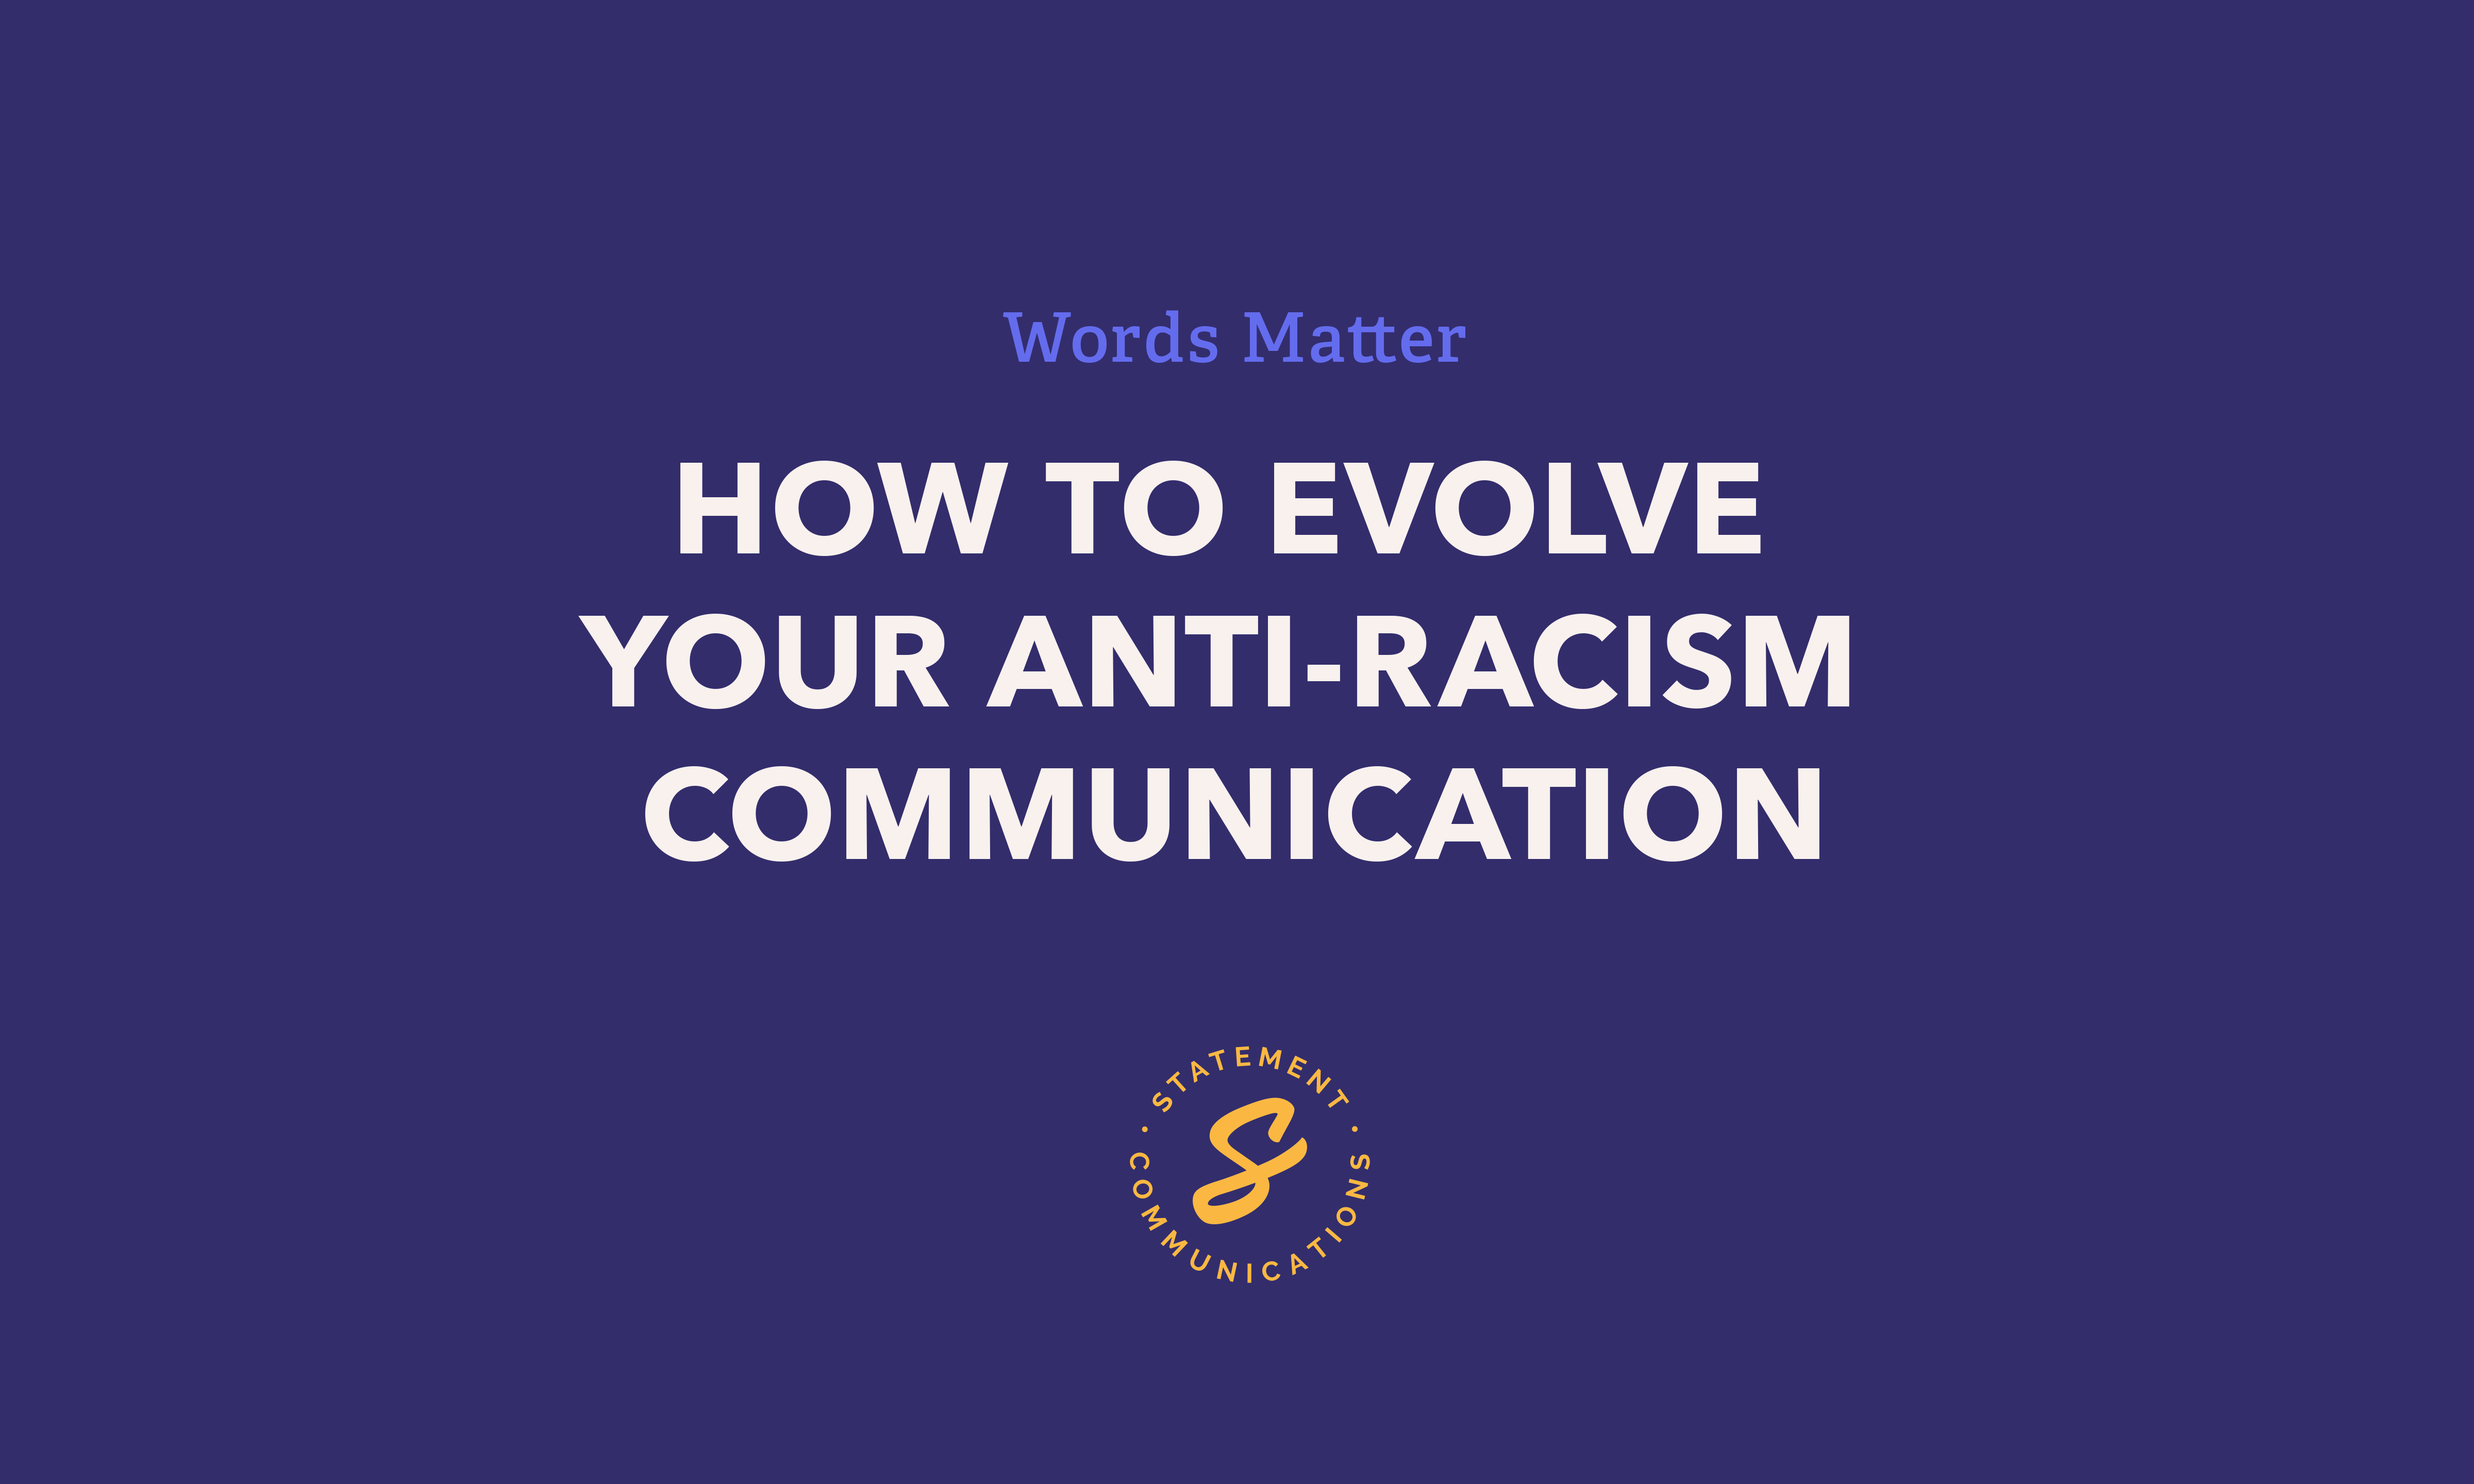 How to evolve your anti-racism communications